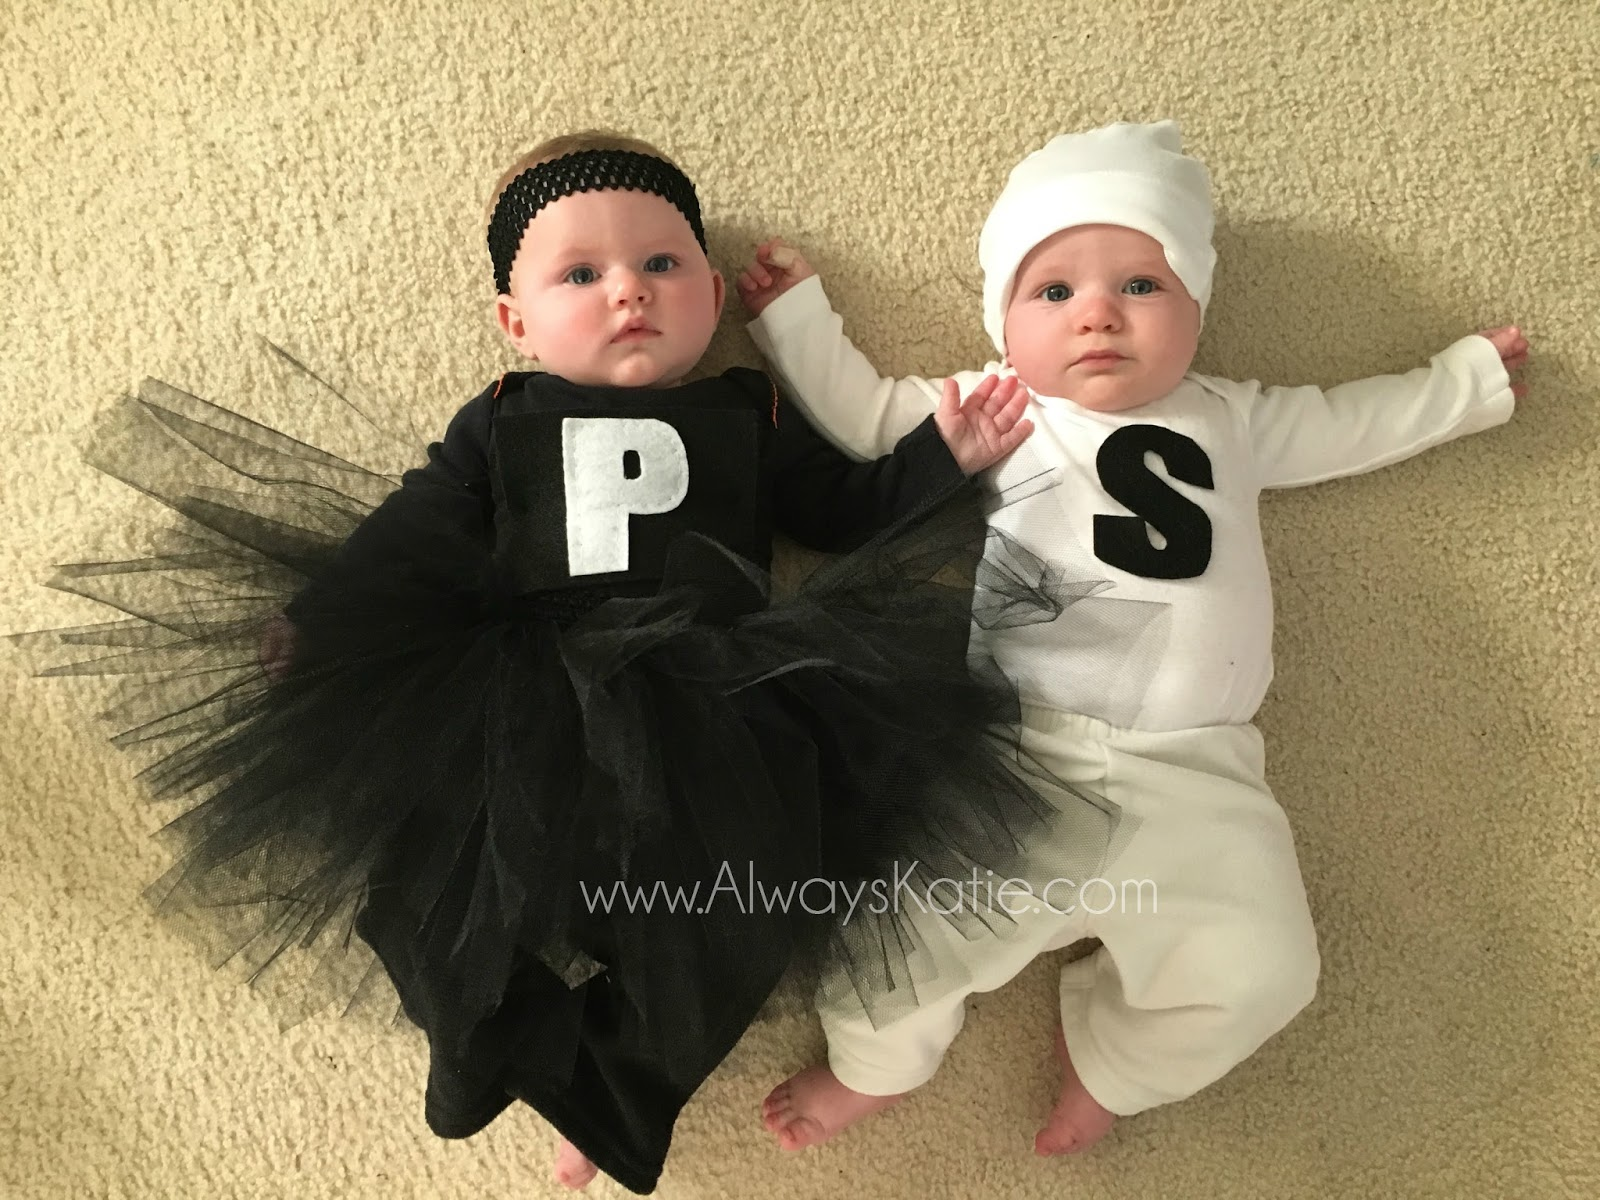 Always Katie Twin Halloween Costumes Salt and Pepper Shakers